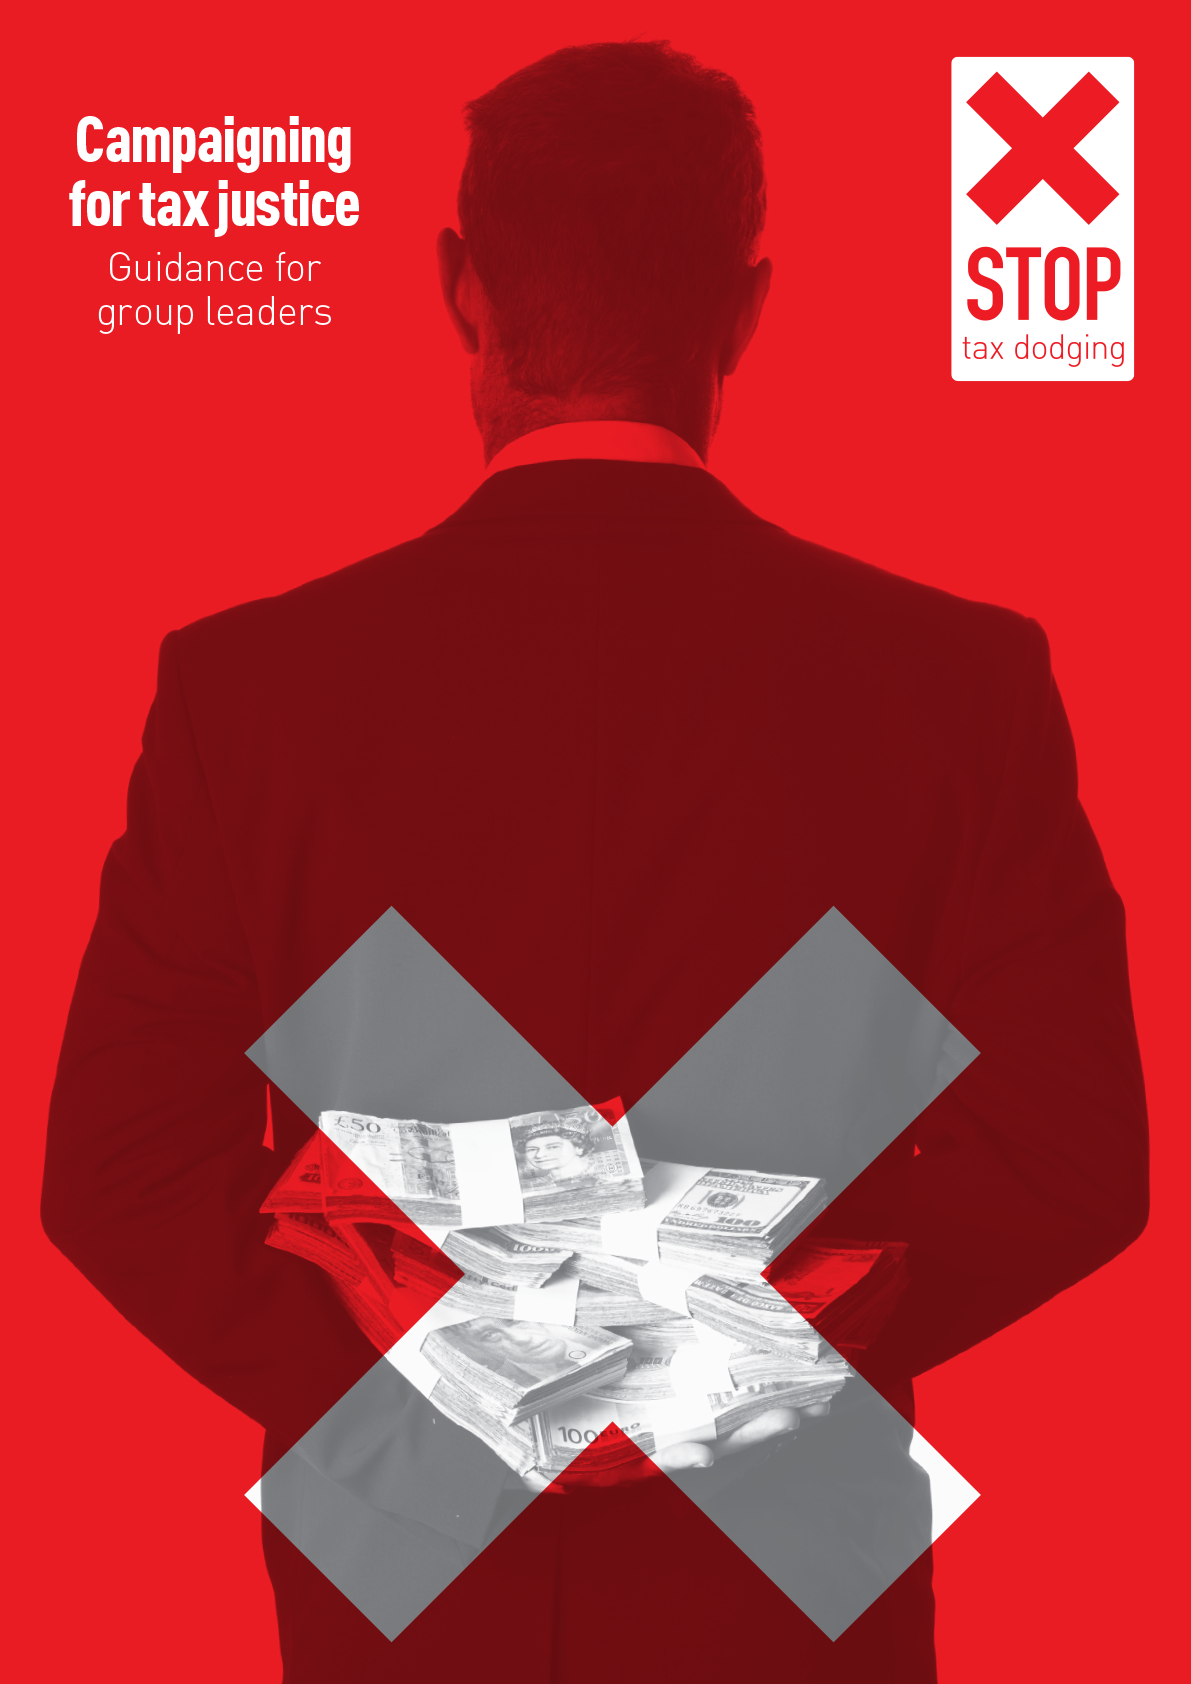 STOP-tax-dodging-campaigner-pack-Oct-2013-1